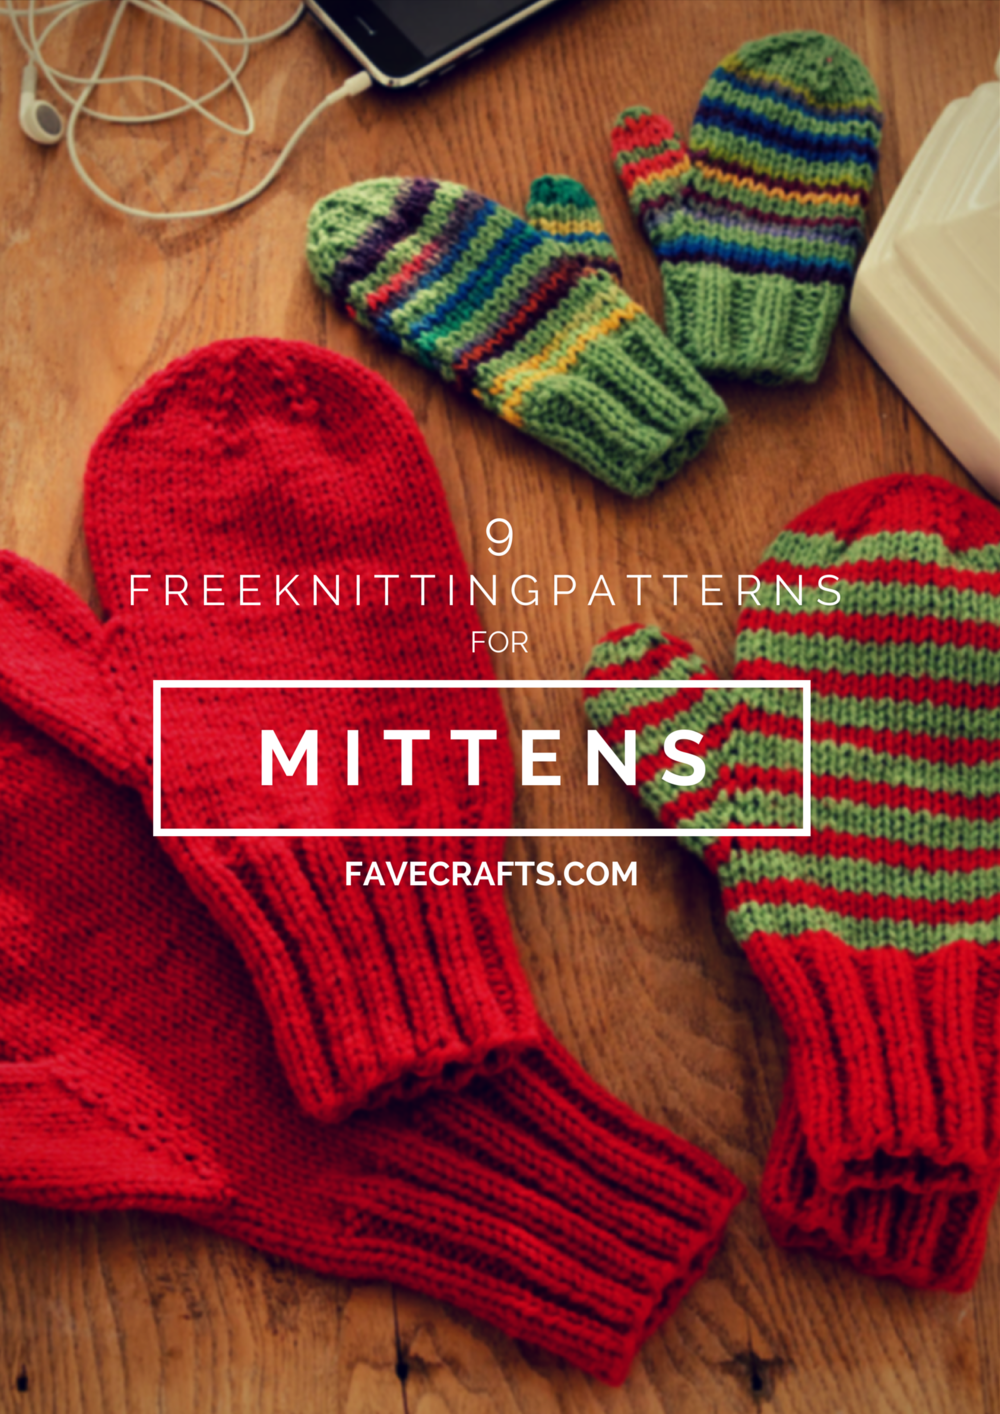 16 Free Knitting Patterns for Mittens FaveCrafts.com